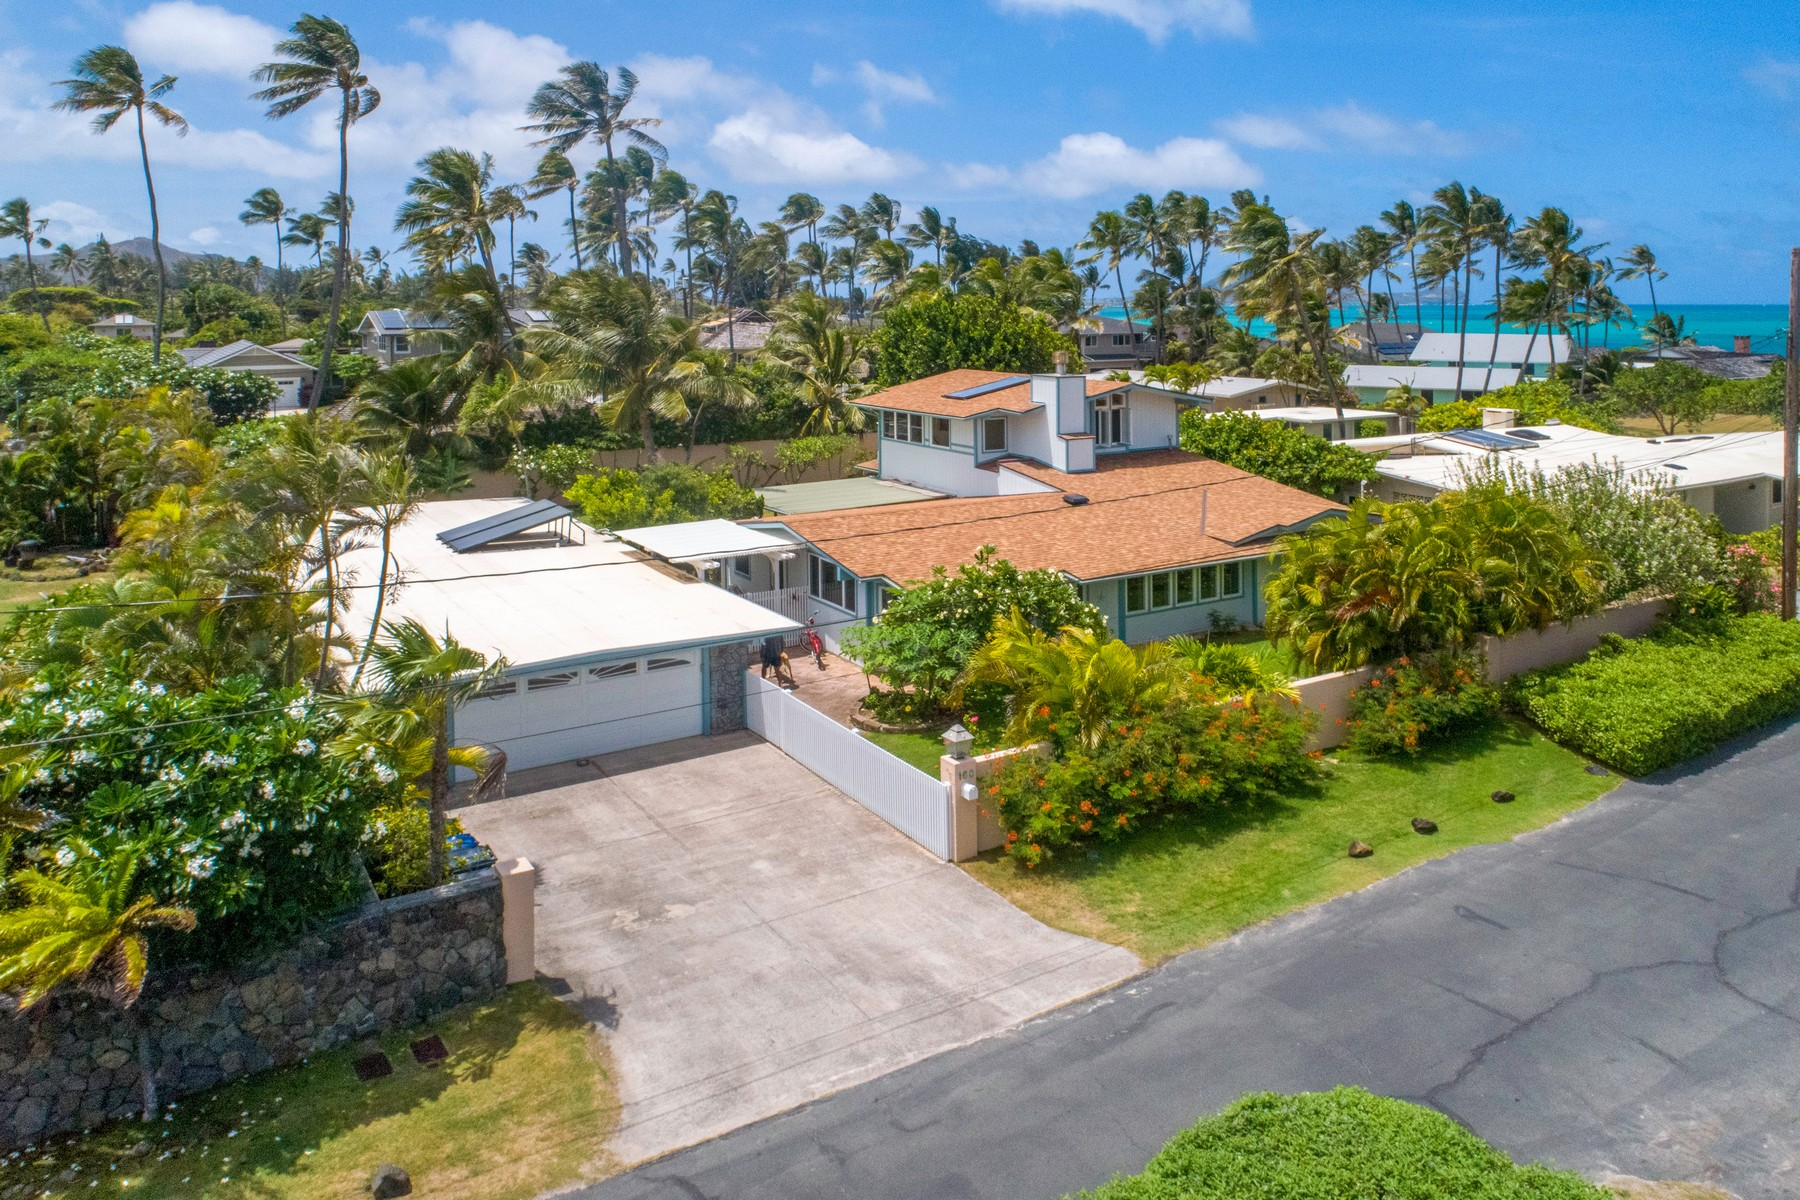 Single Family Homes for Active at Beautiful Beachside Home 160 Kaapuni Dr Kailua, Hawaii 96734 United States